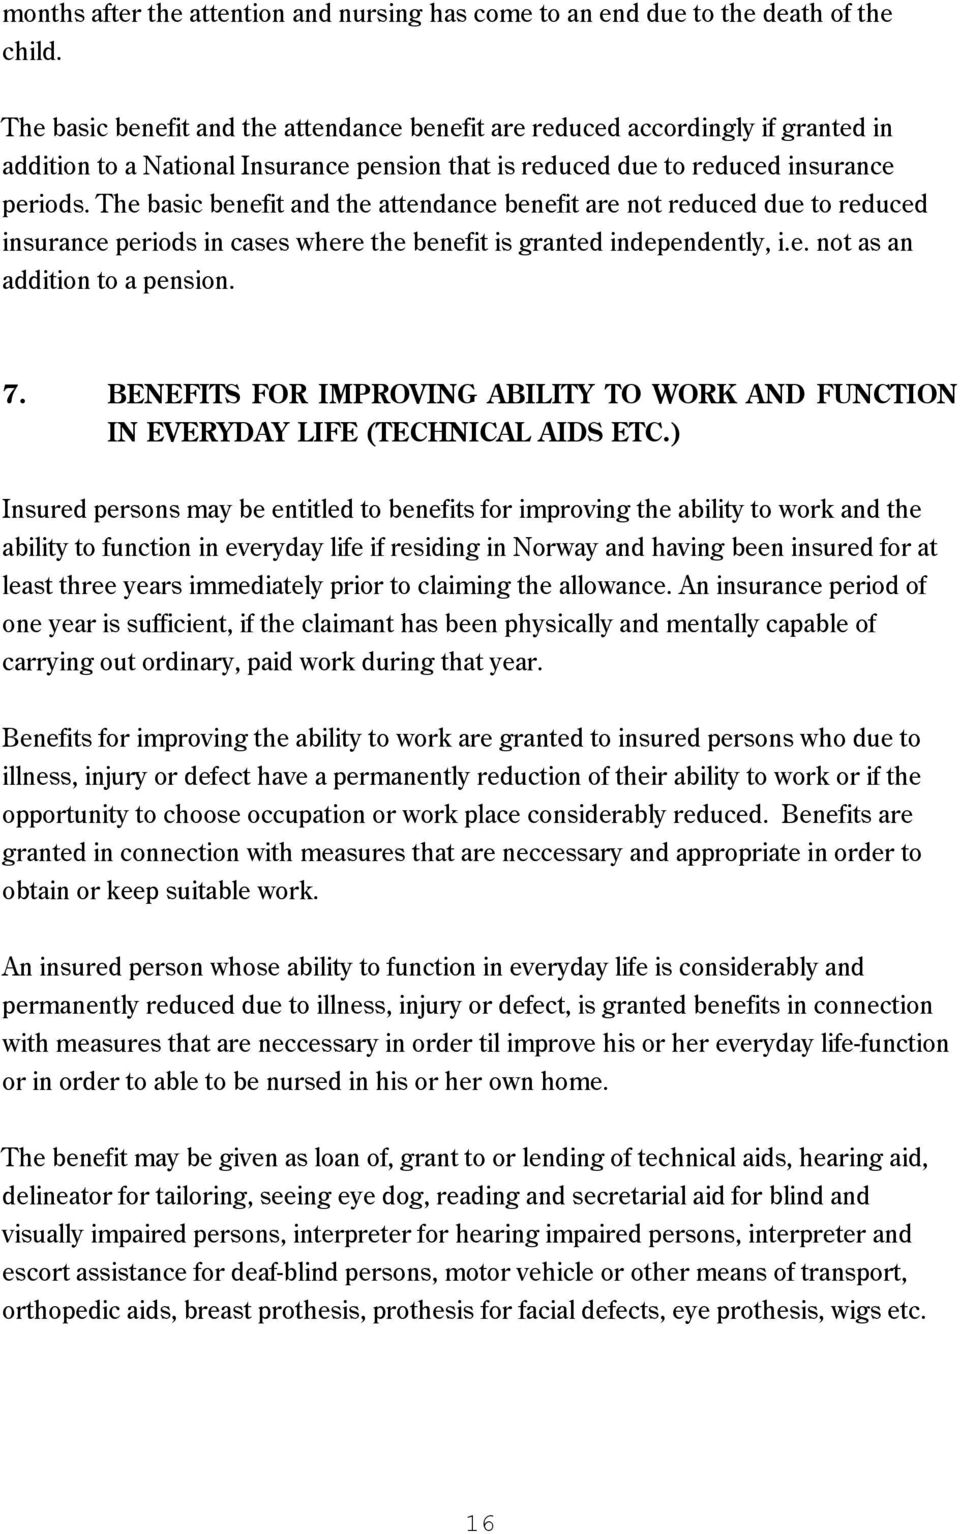 The basic benefit and the attendance benefit are not reduced due to reduced insurance periods in cases where the benefit is granted independently, i.e. not as an addition to a pension. 7.